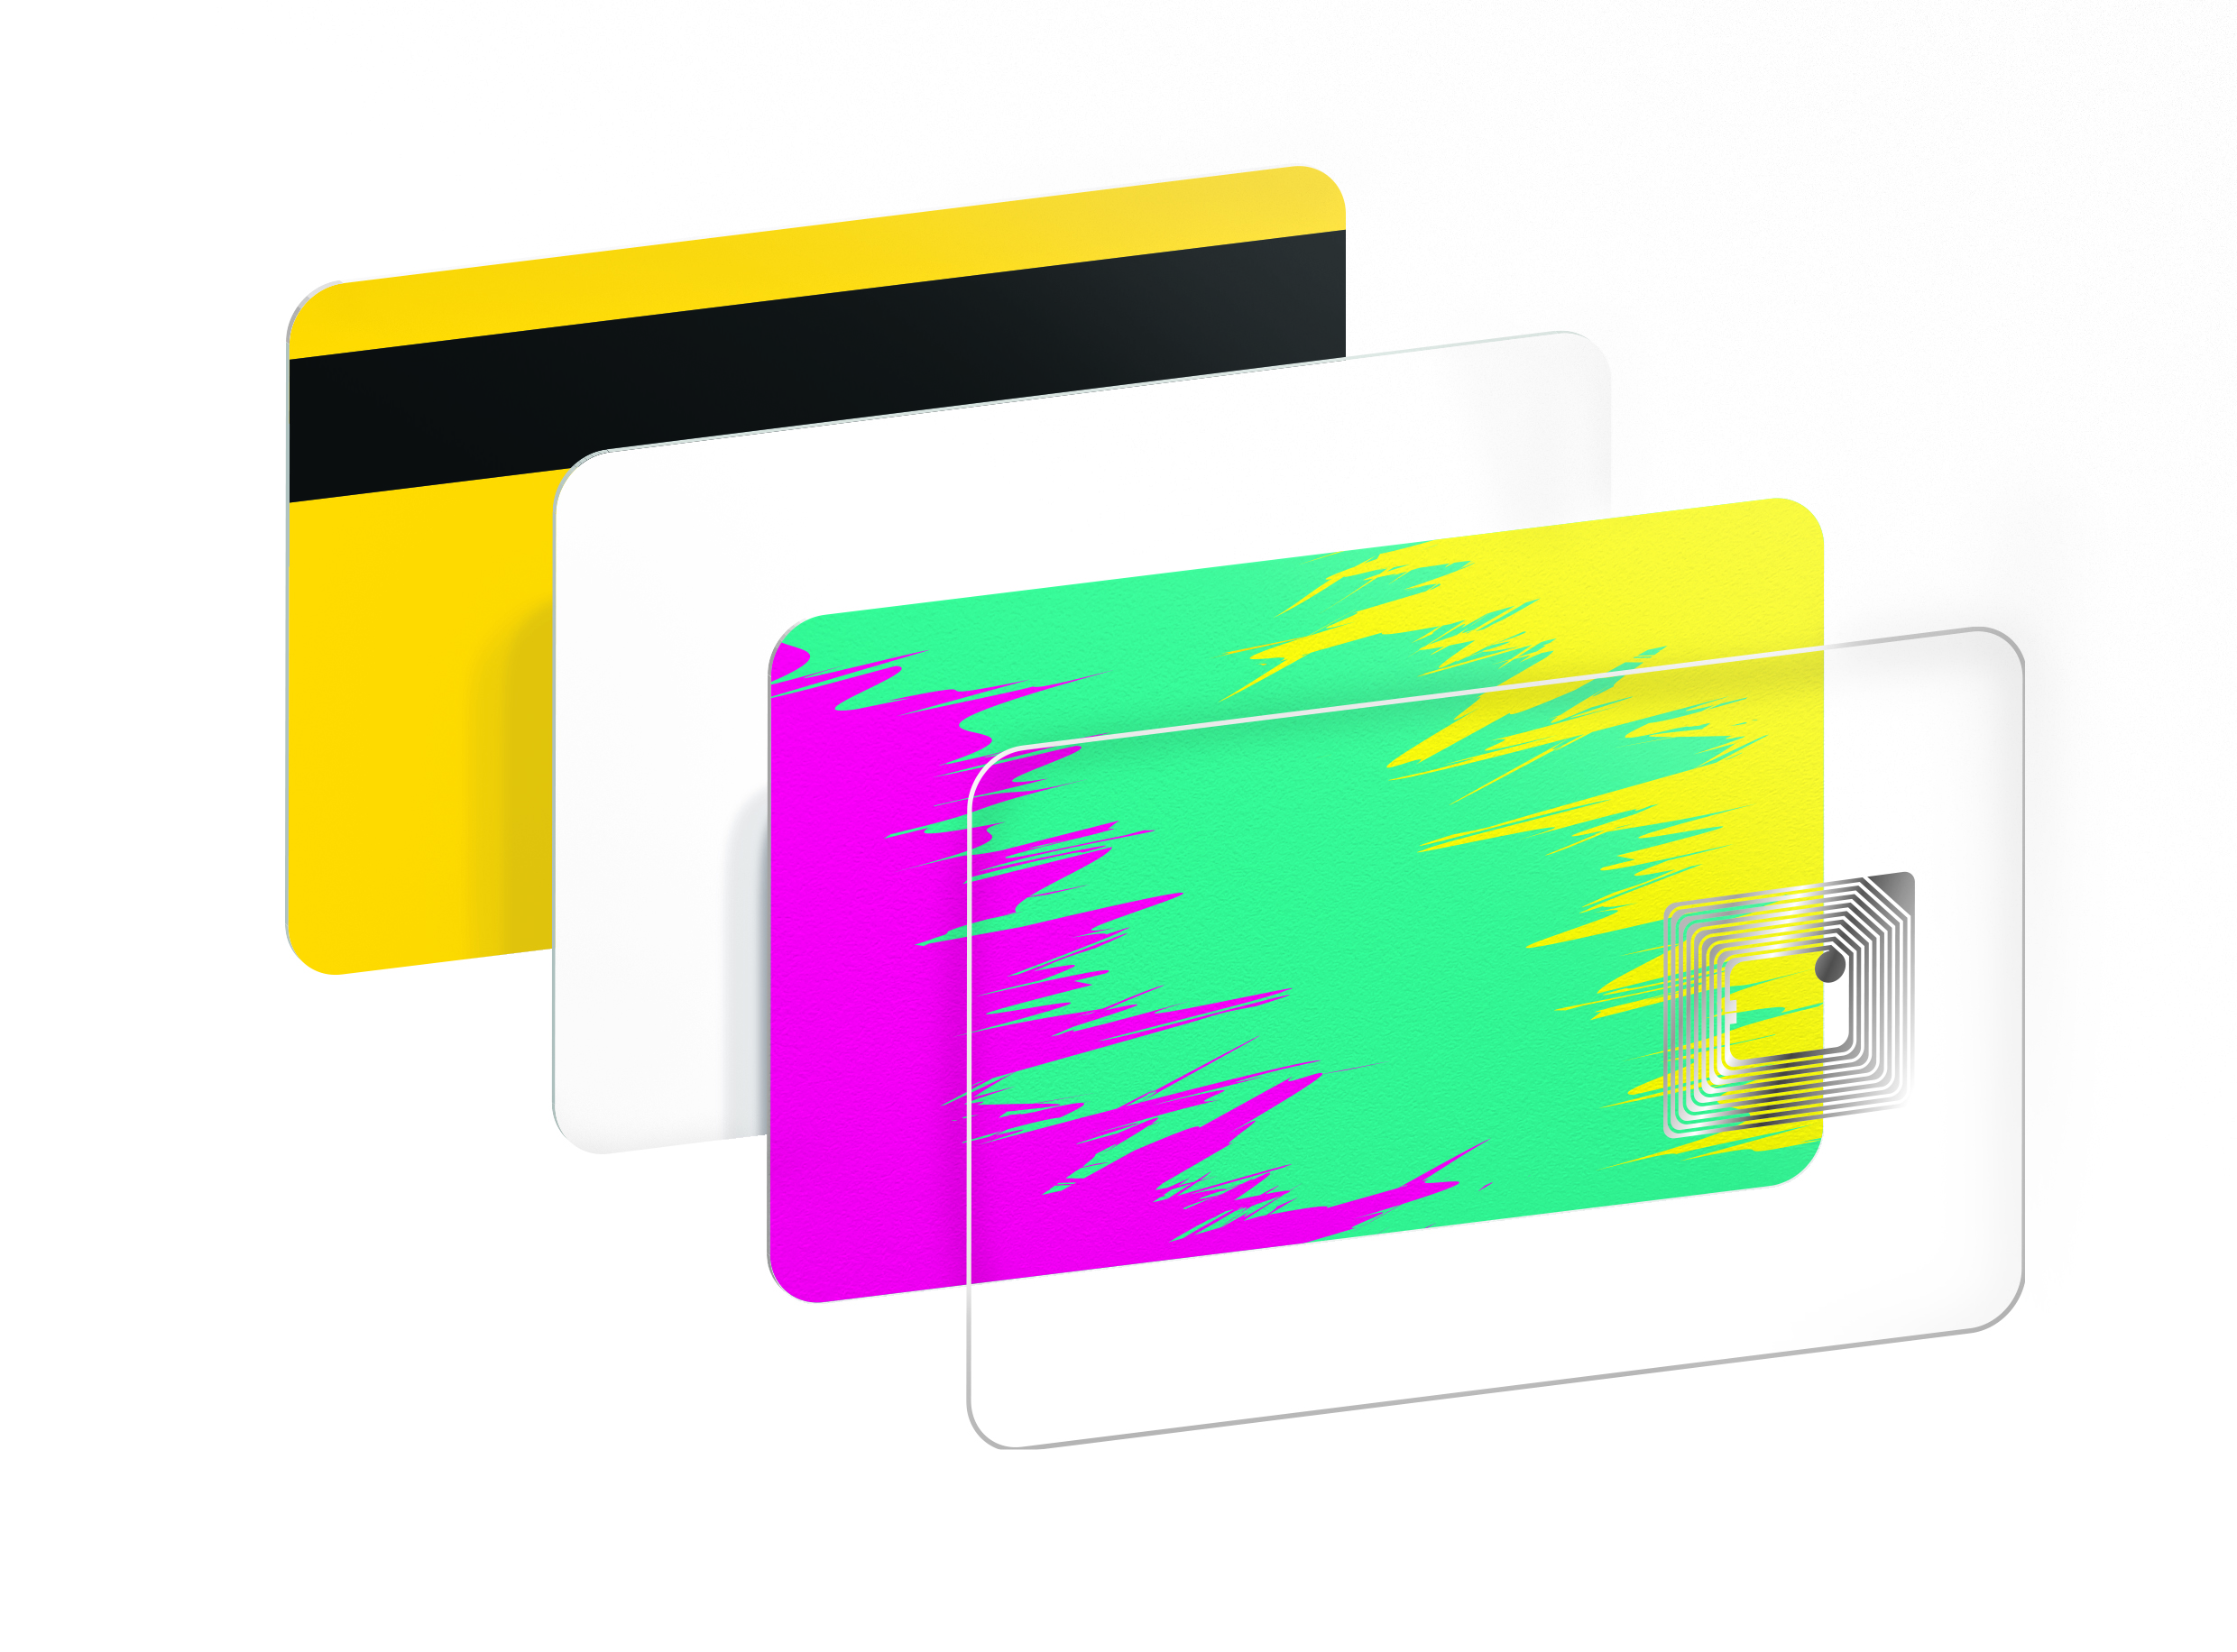 NFC chip card layer by Made by Oomph